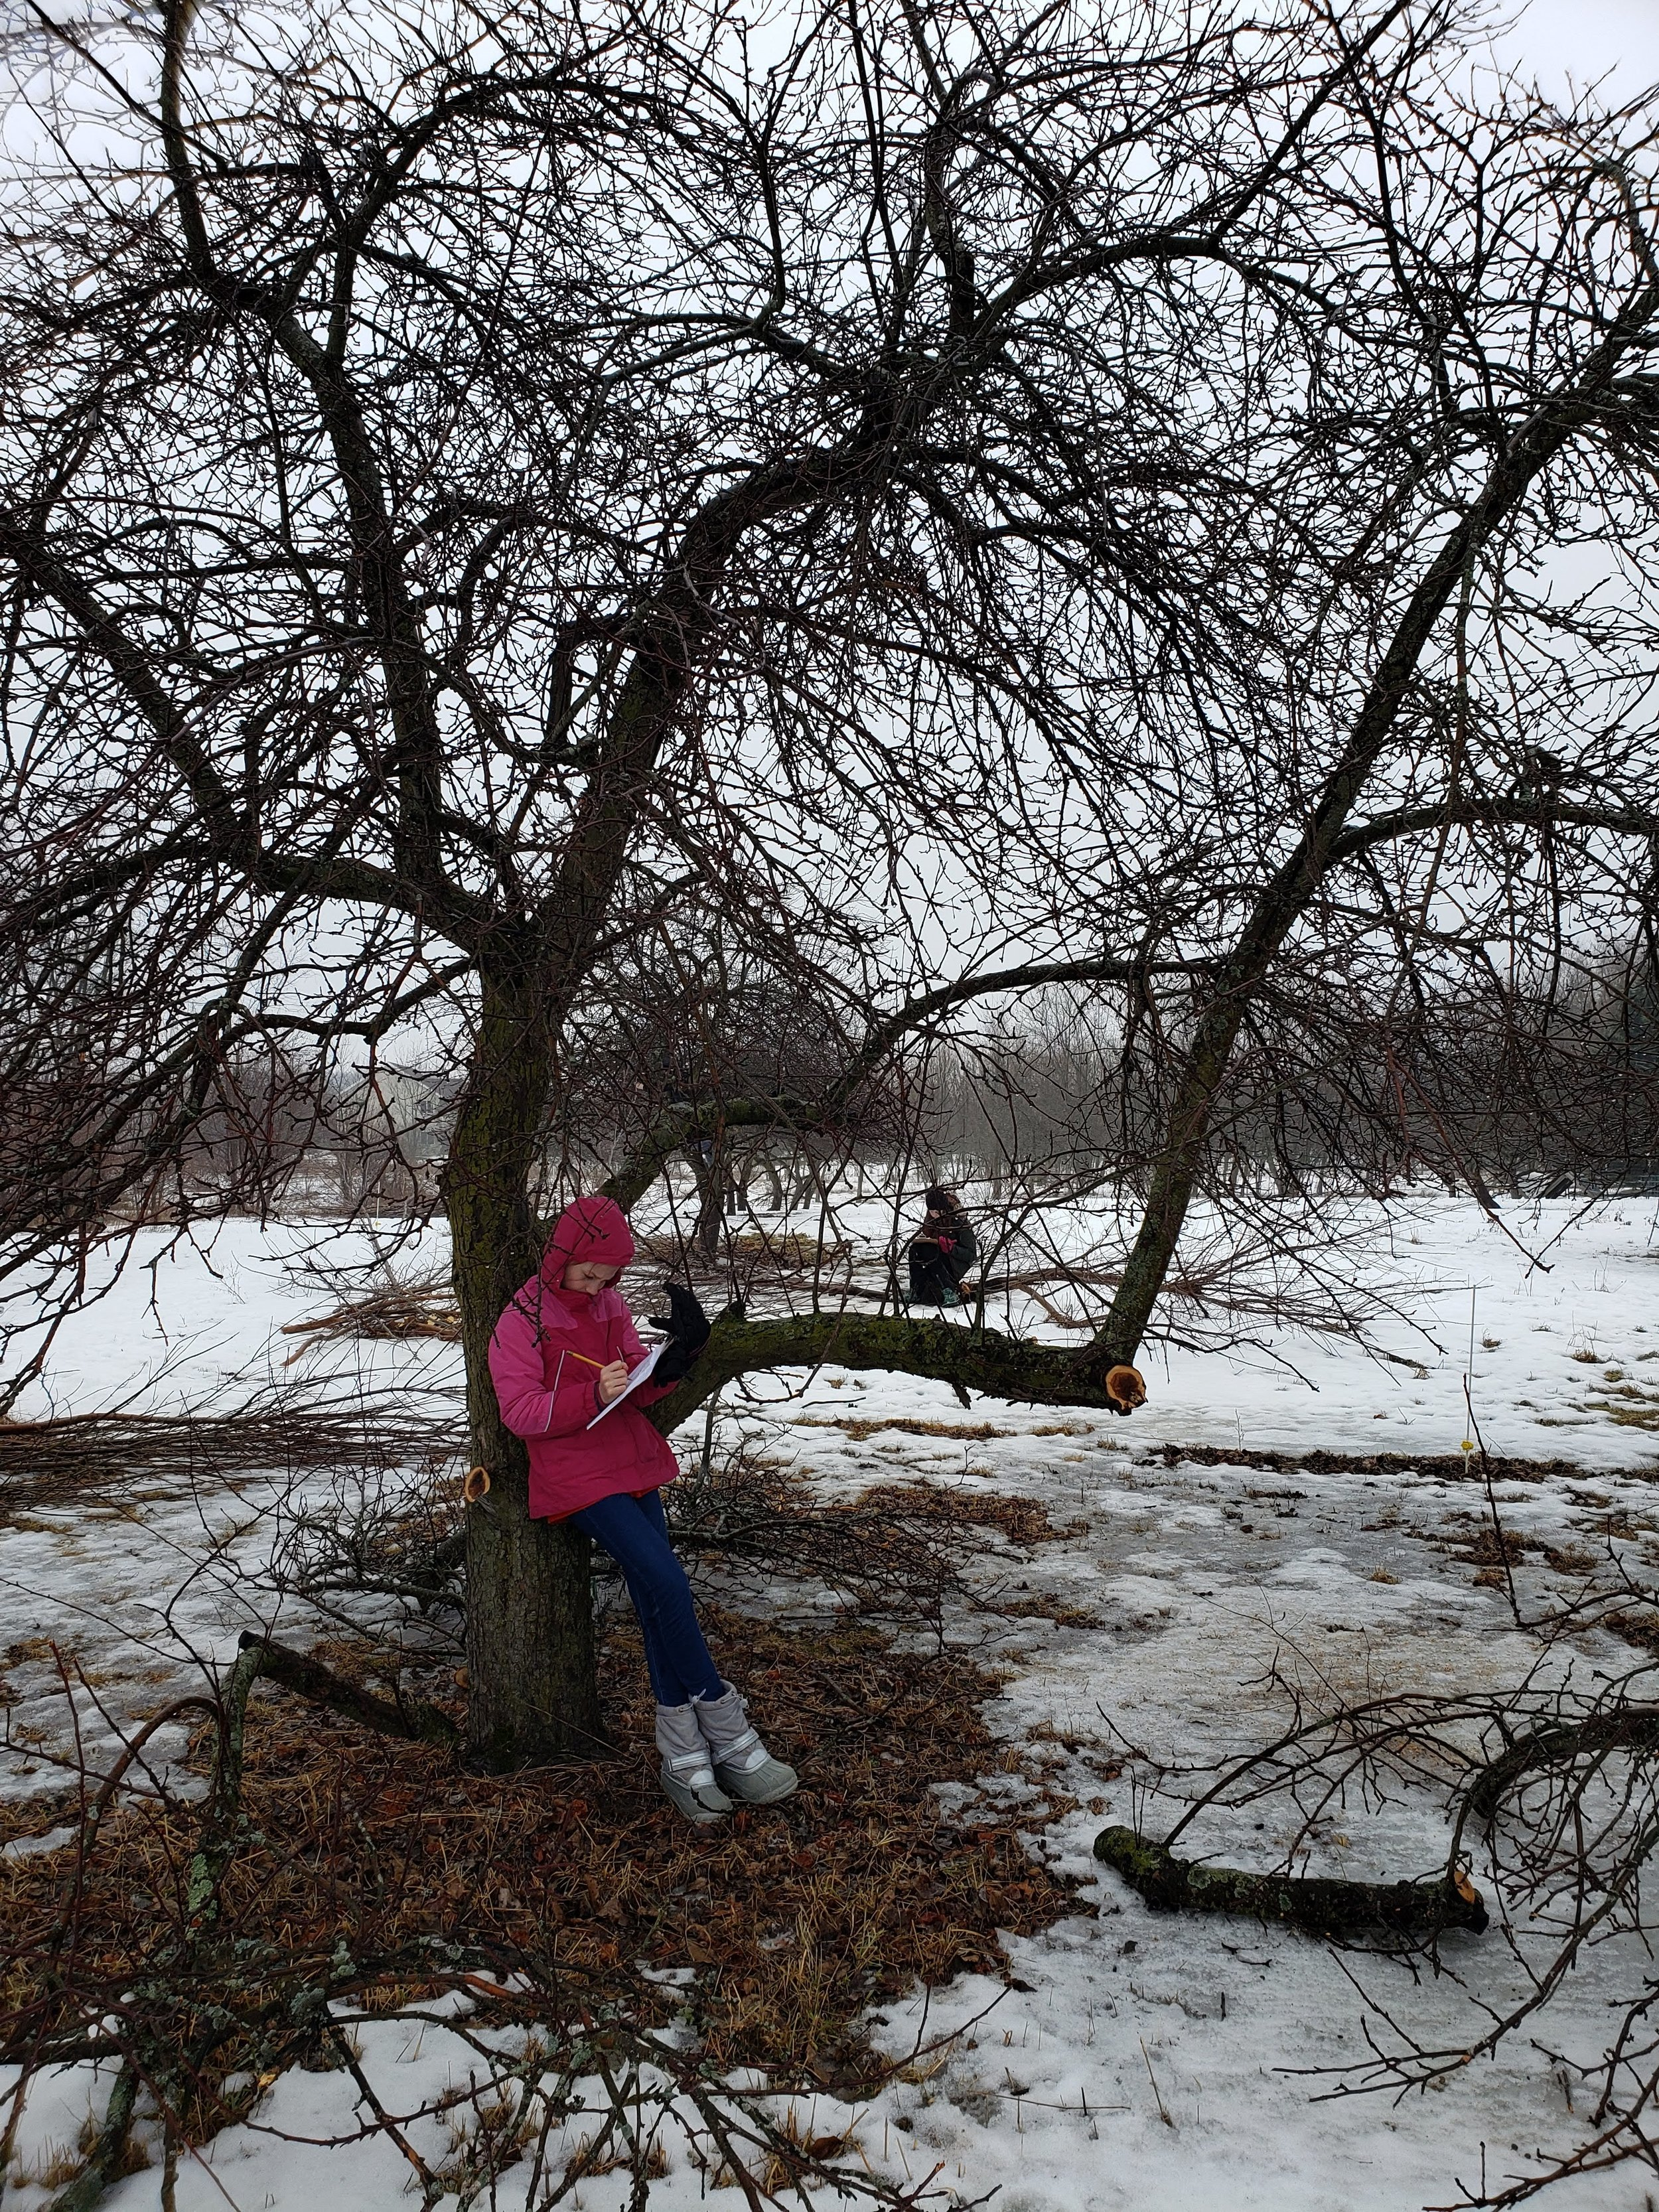 Reflecting on signs of life in the wintry orchard